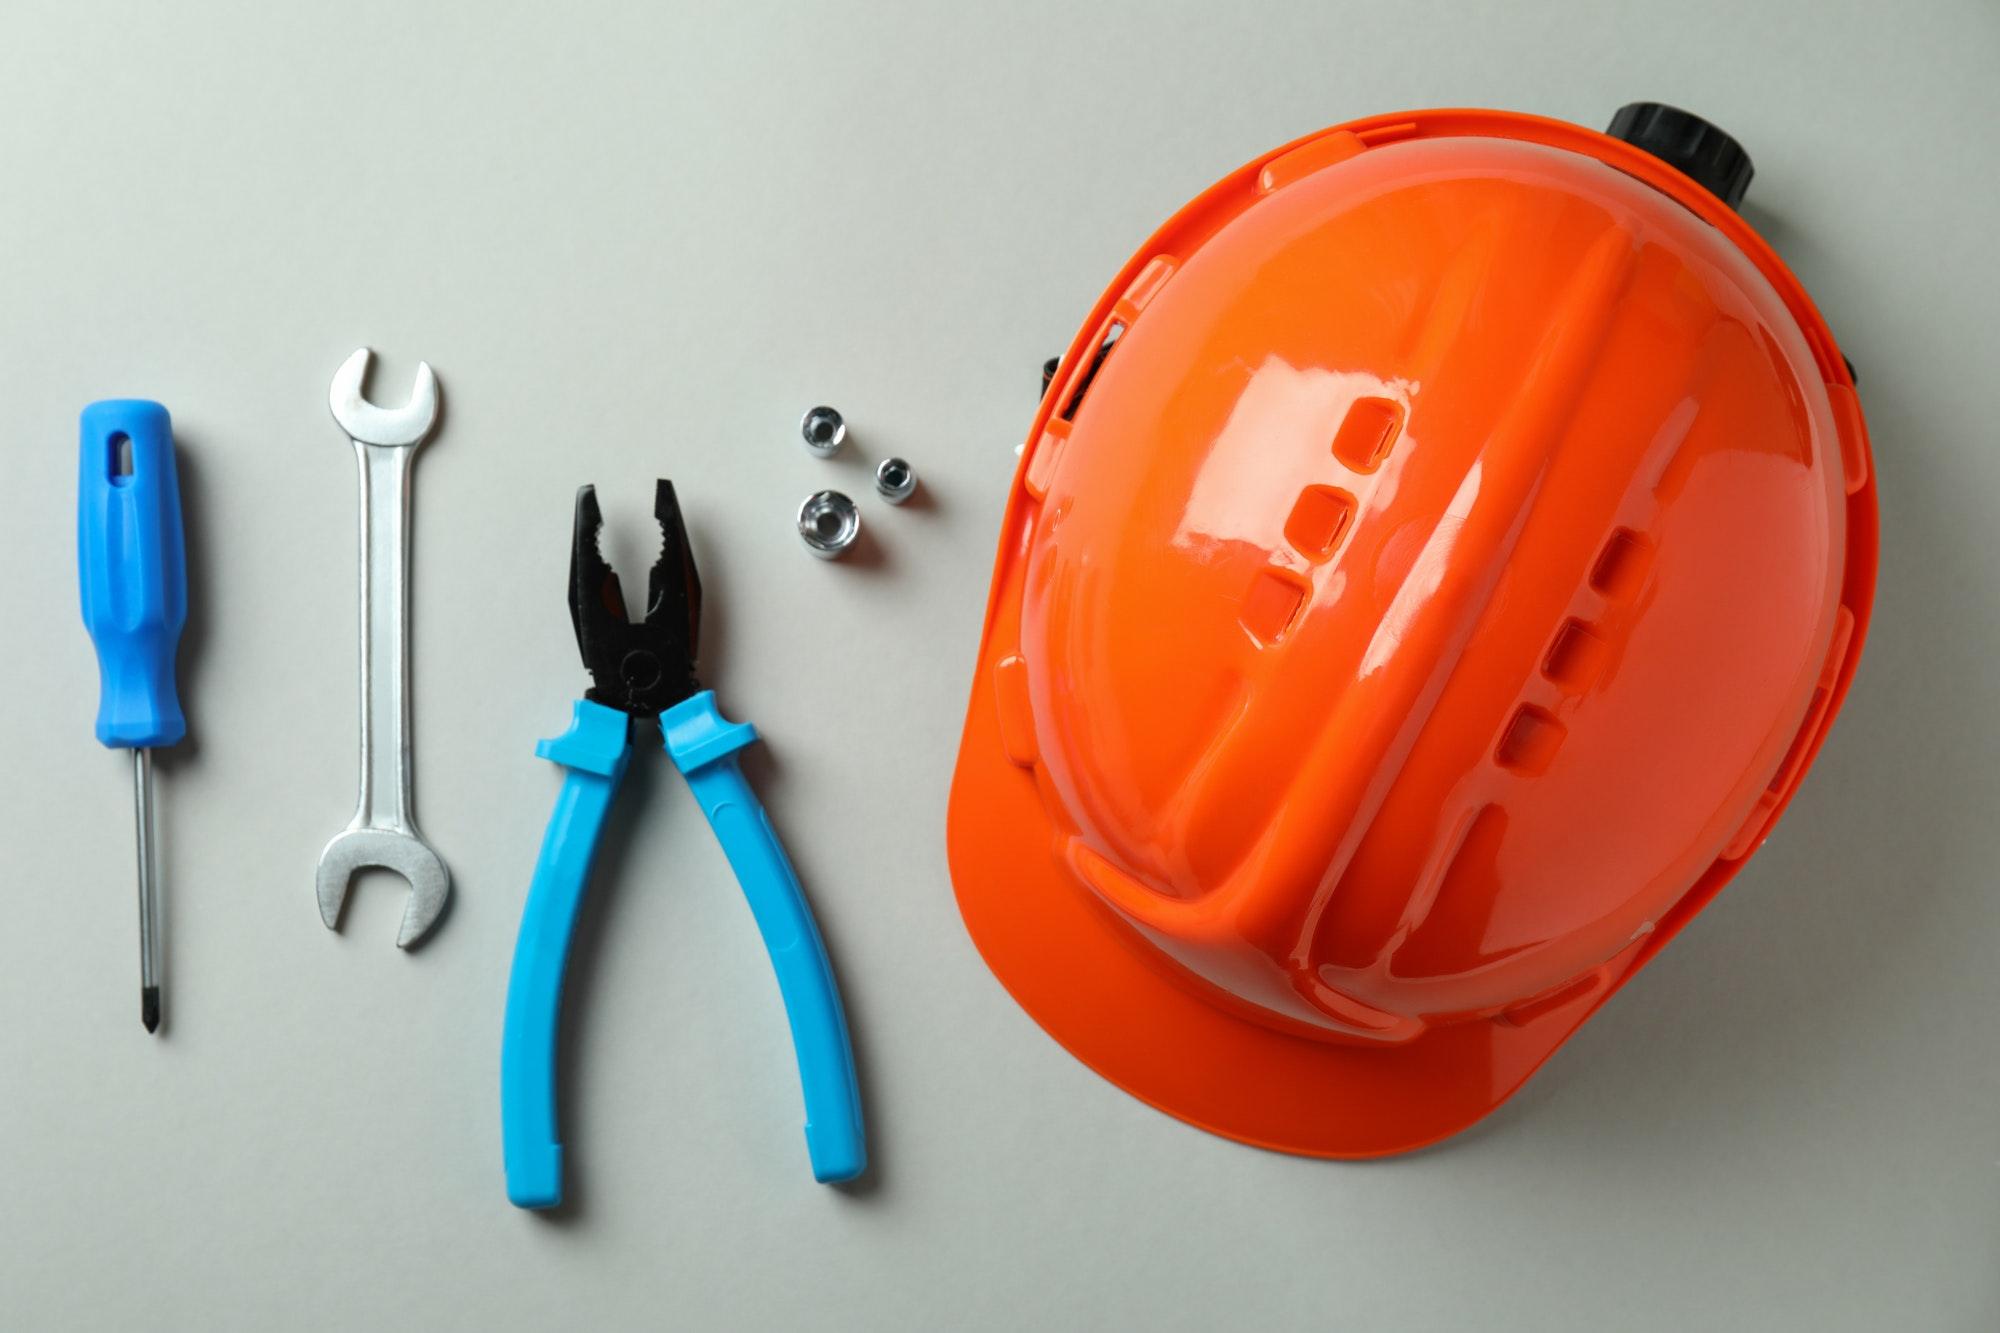 Hard hat and working tools on light gray background